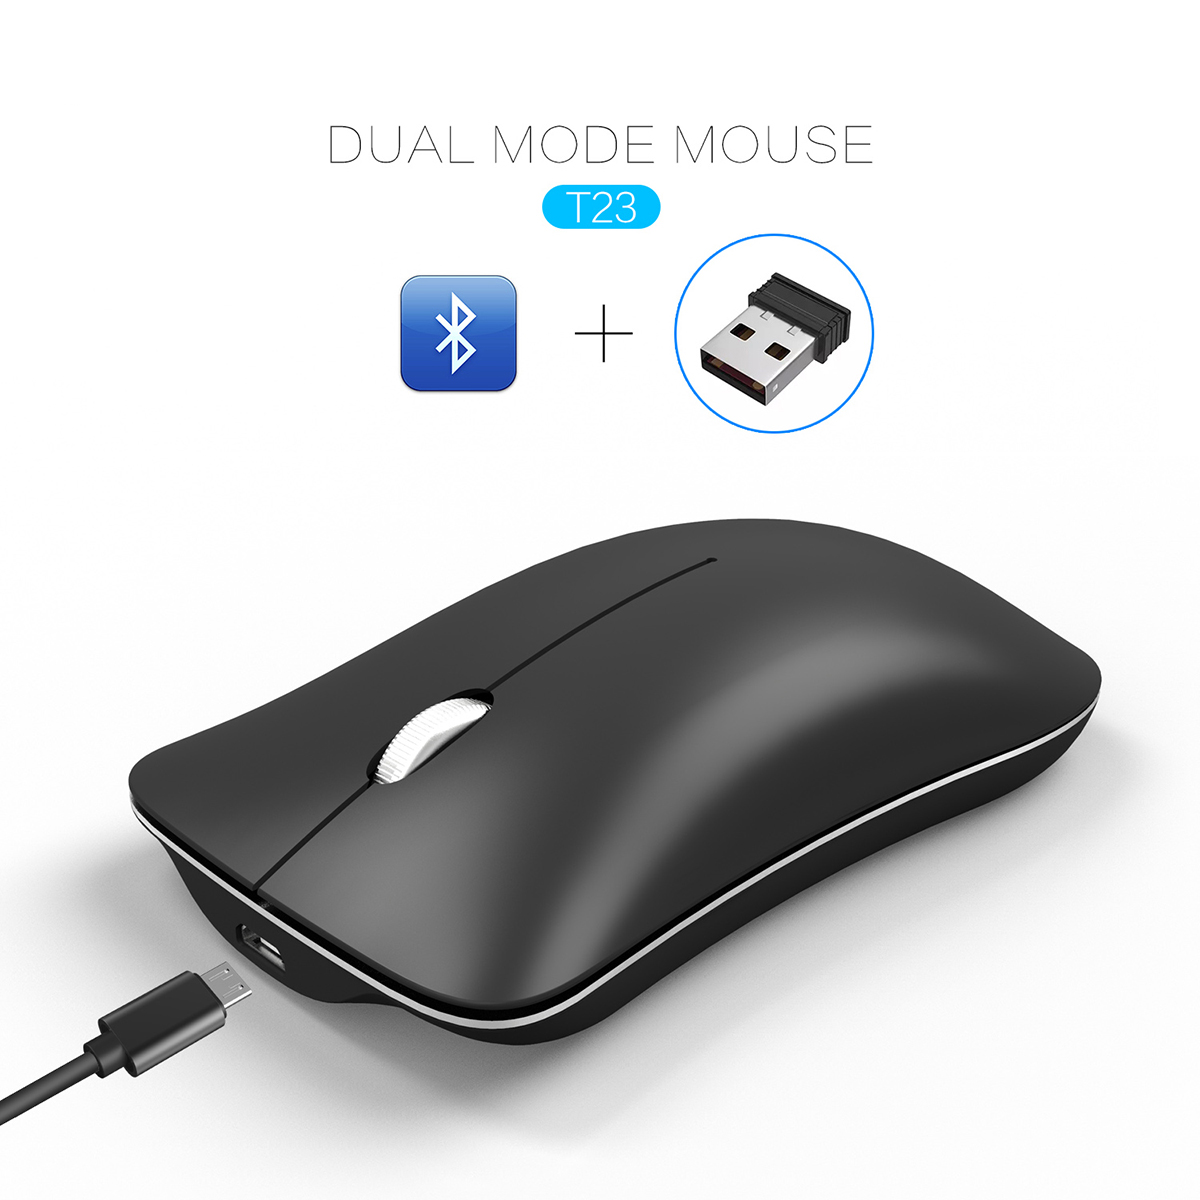 Wireless Bluetooth Dual Mode Mouse Can Connect 2 Computer Quiet Silent Design Rechargeable Optical Mouse For IPad MAC PC